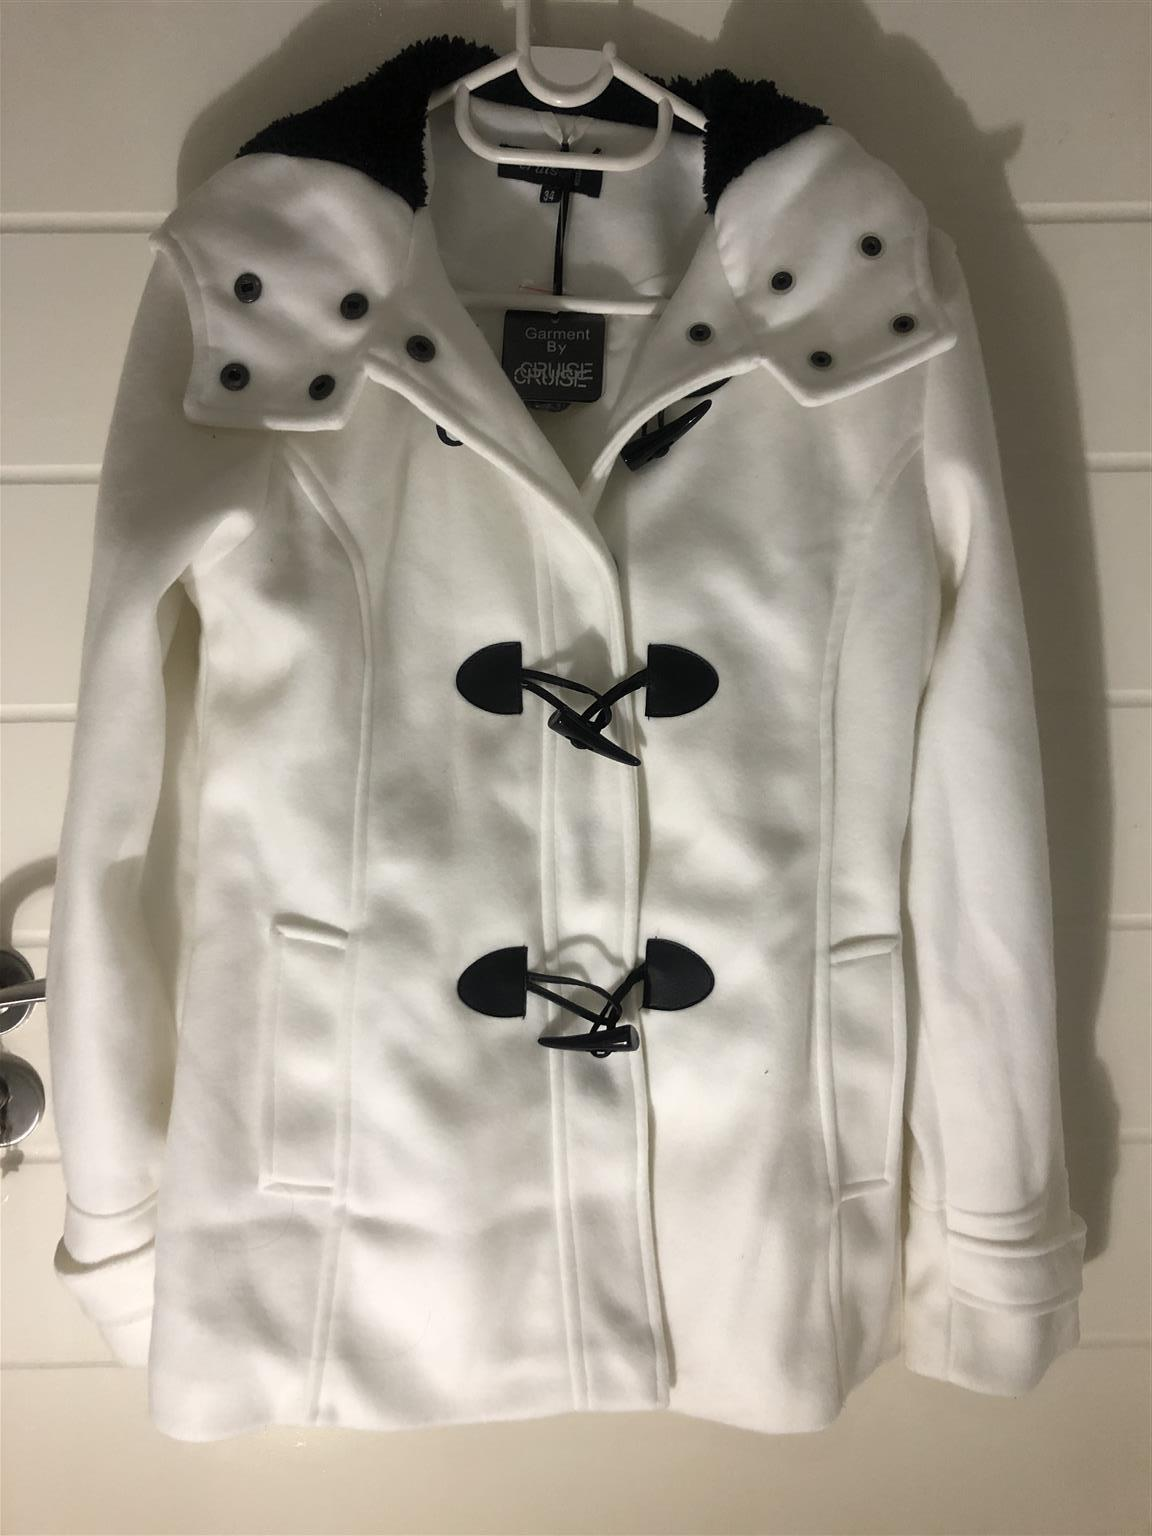 Winter coats for sale